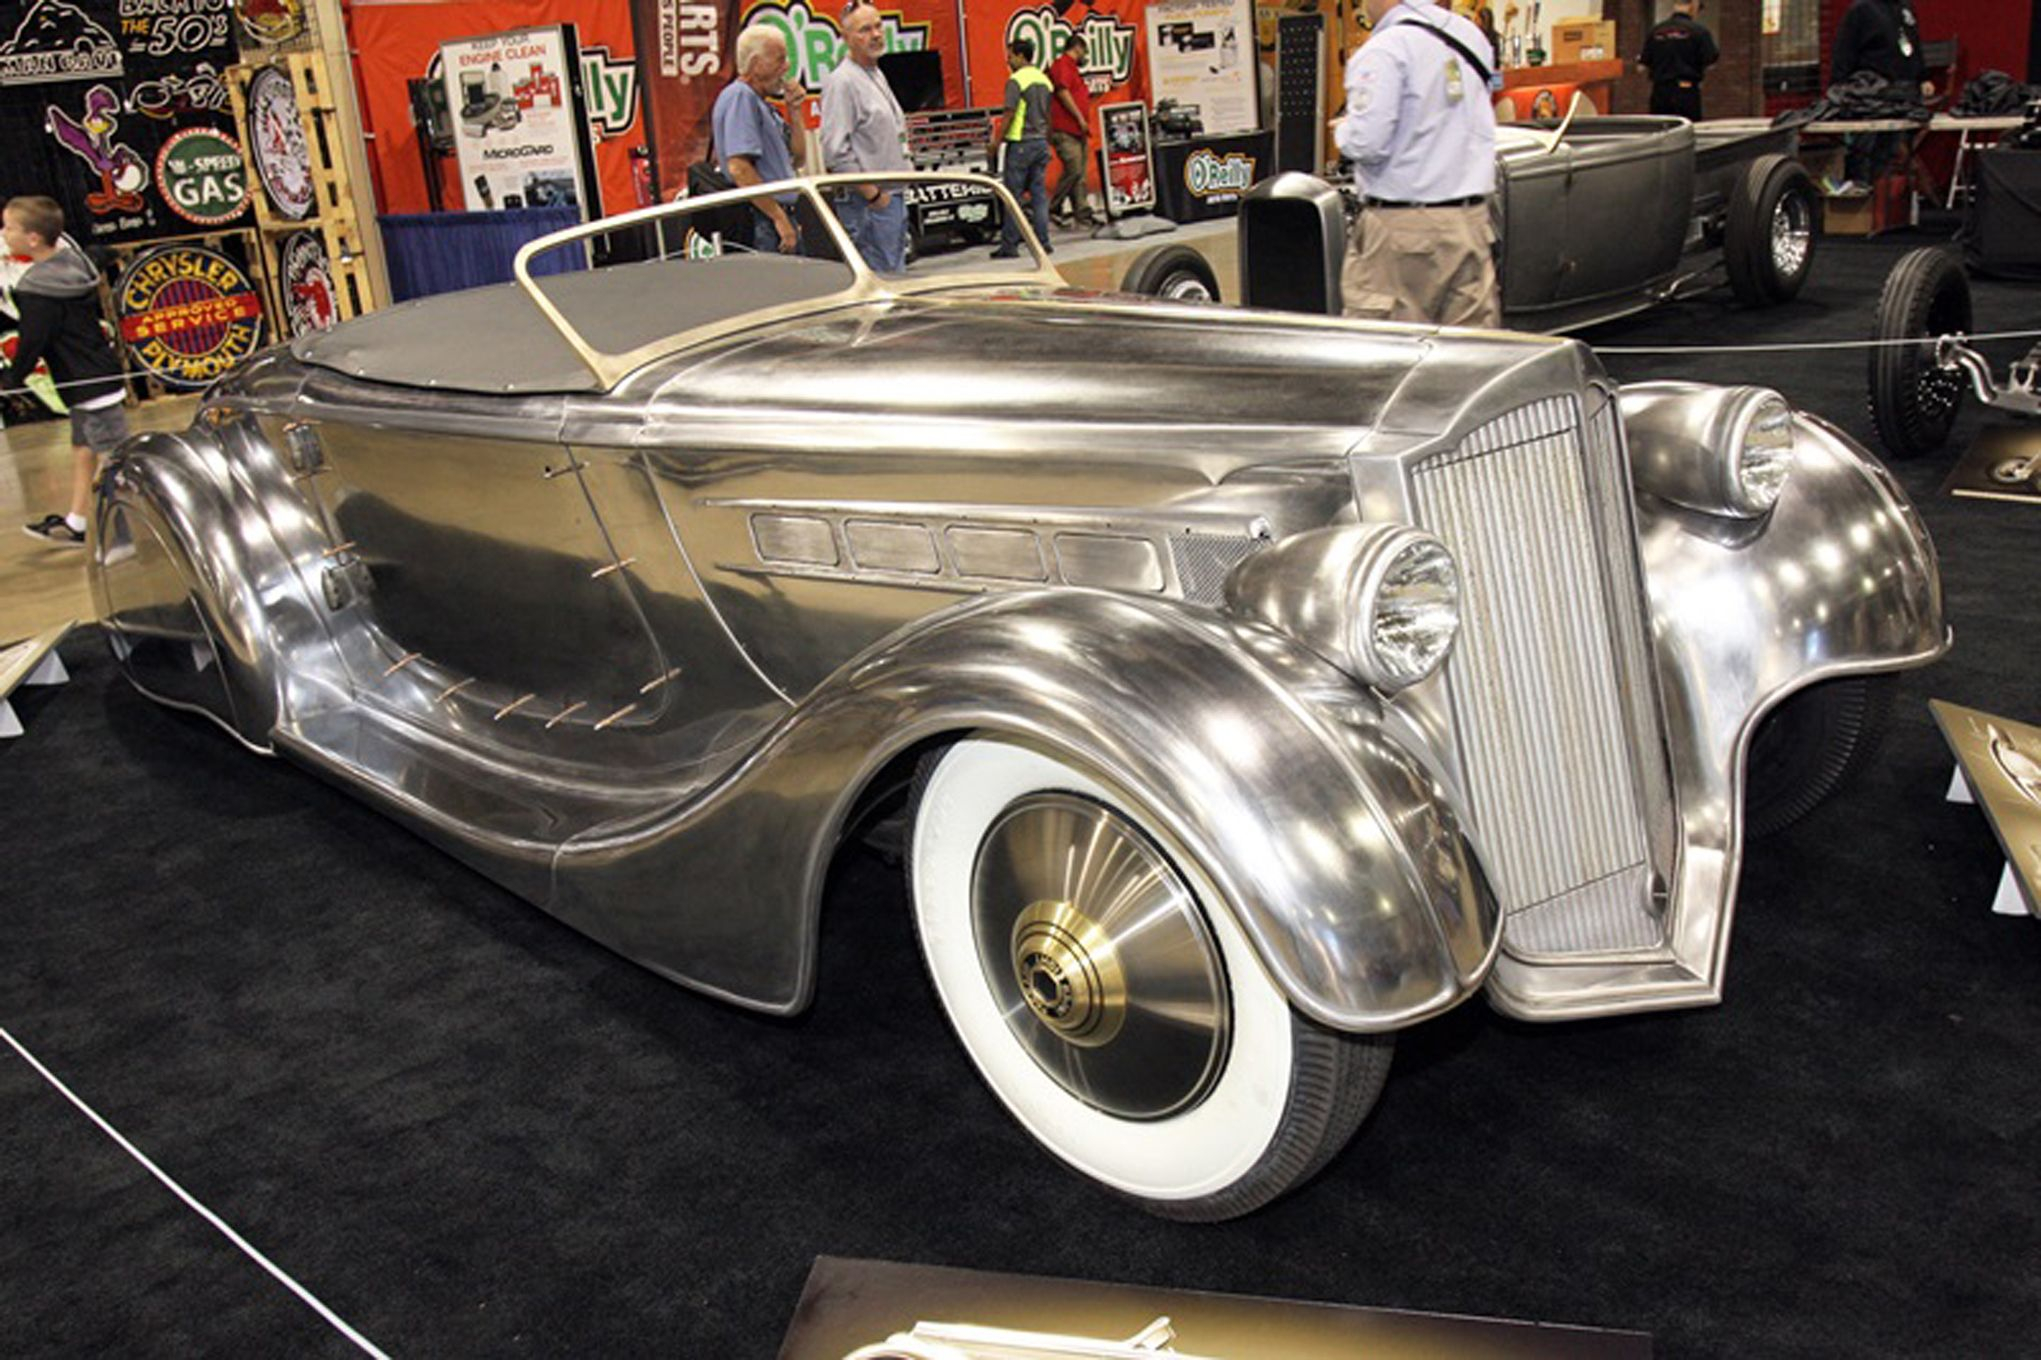 http://www.hotrod.com/articles/this-1936-packard-roadster-is-a ...